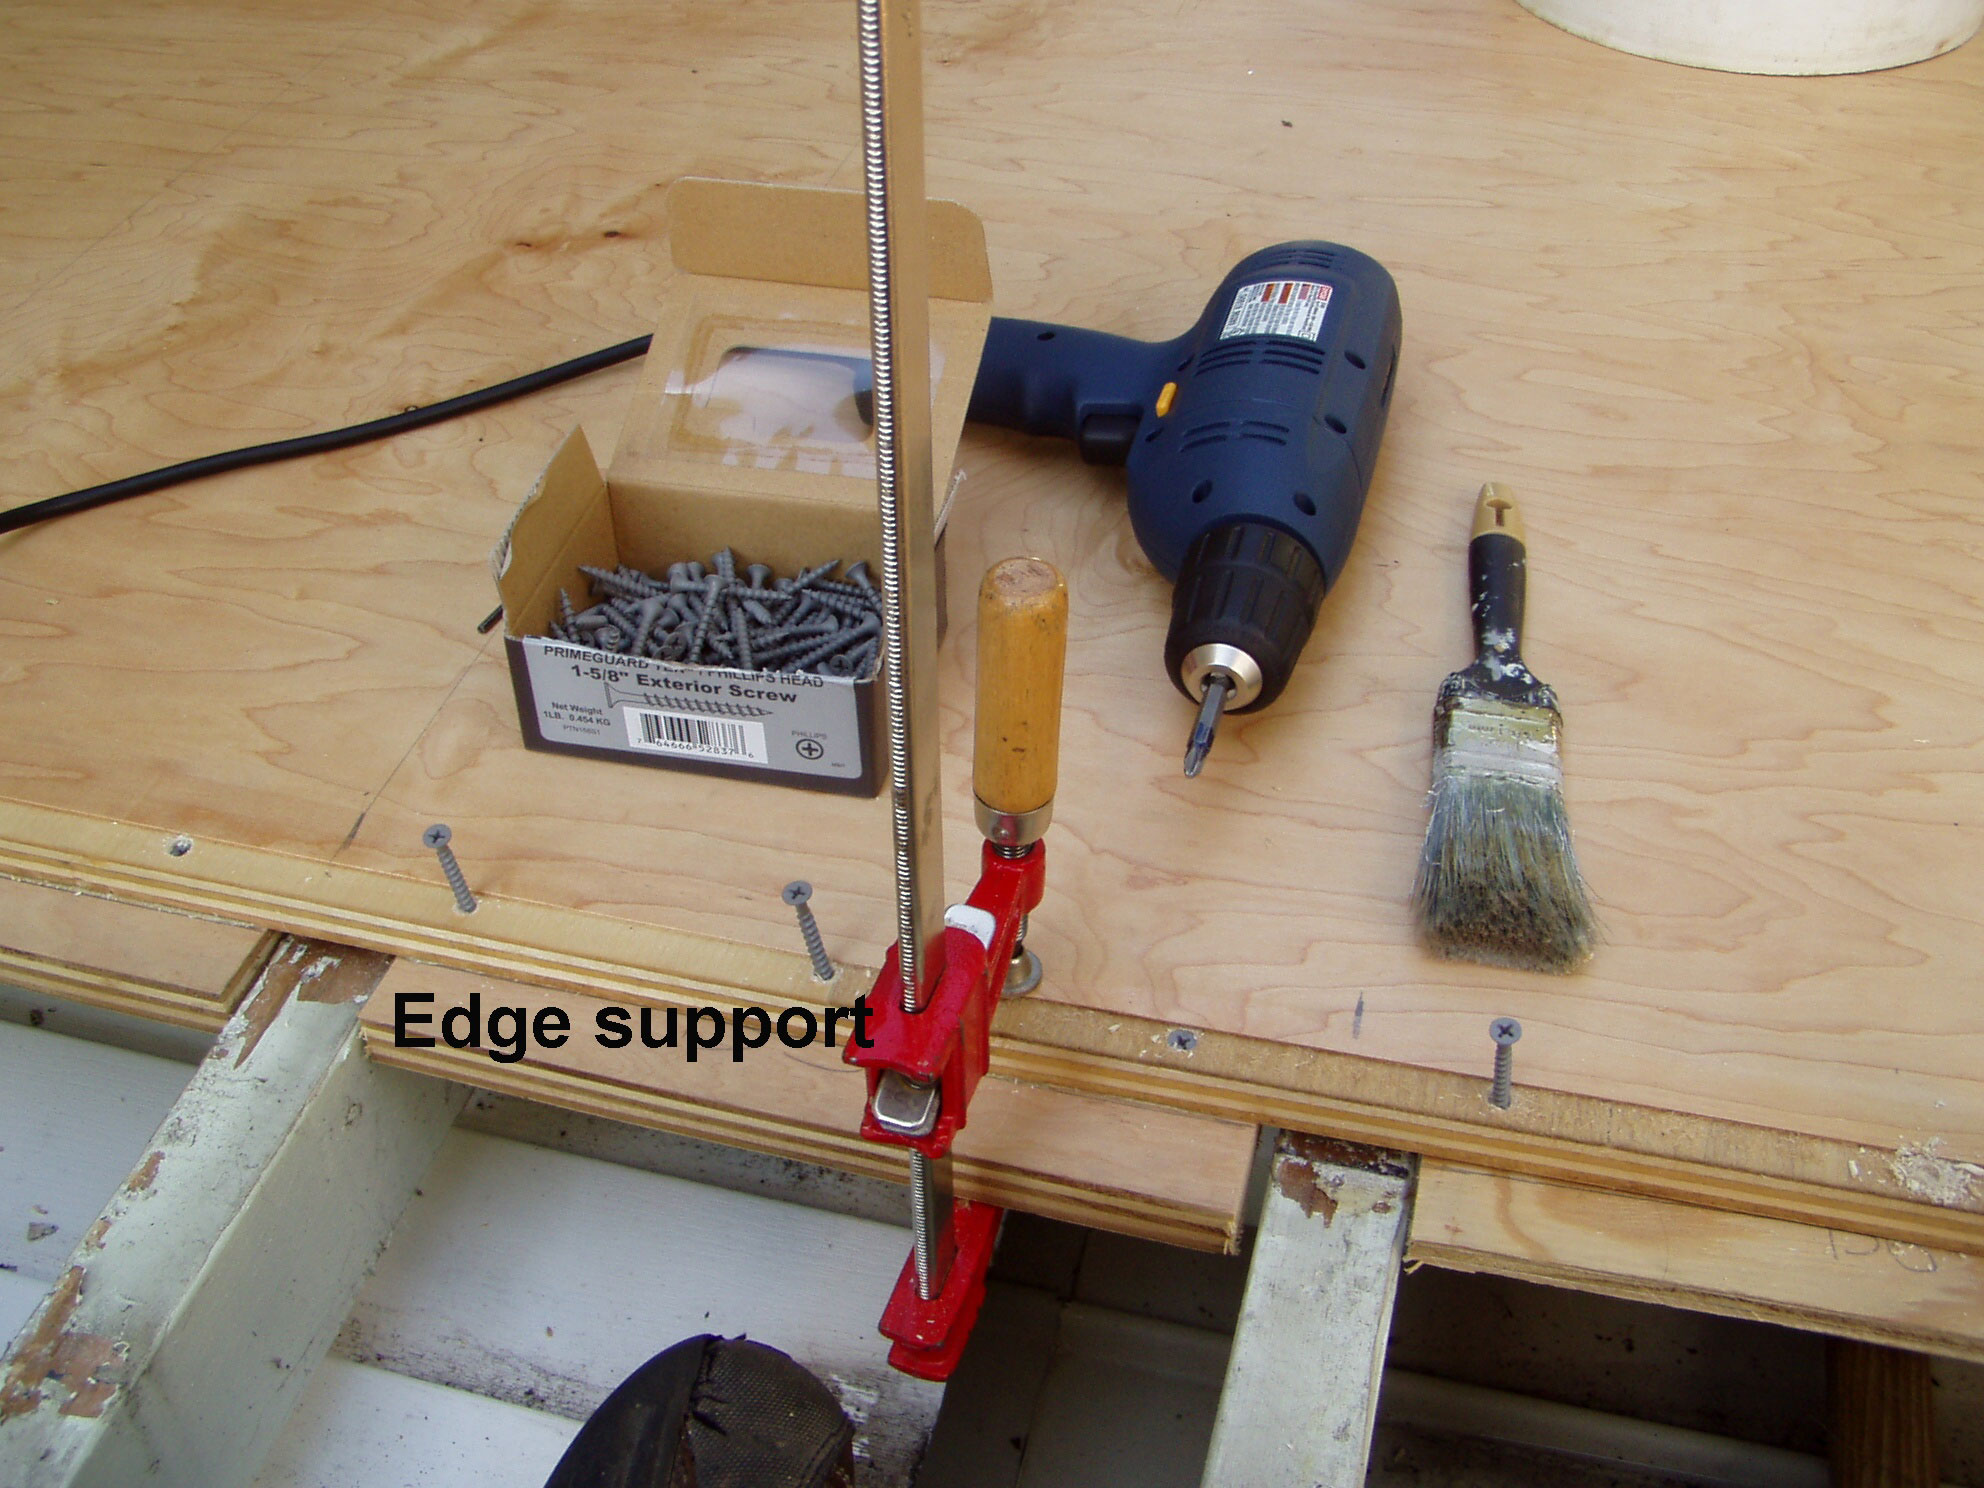 Edge support installation